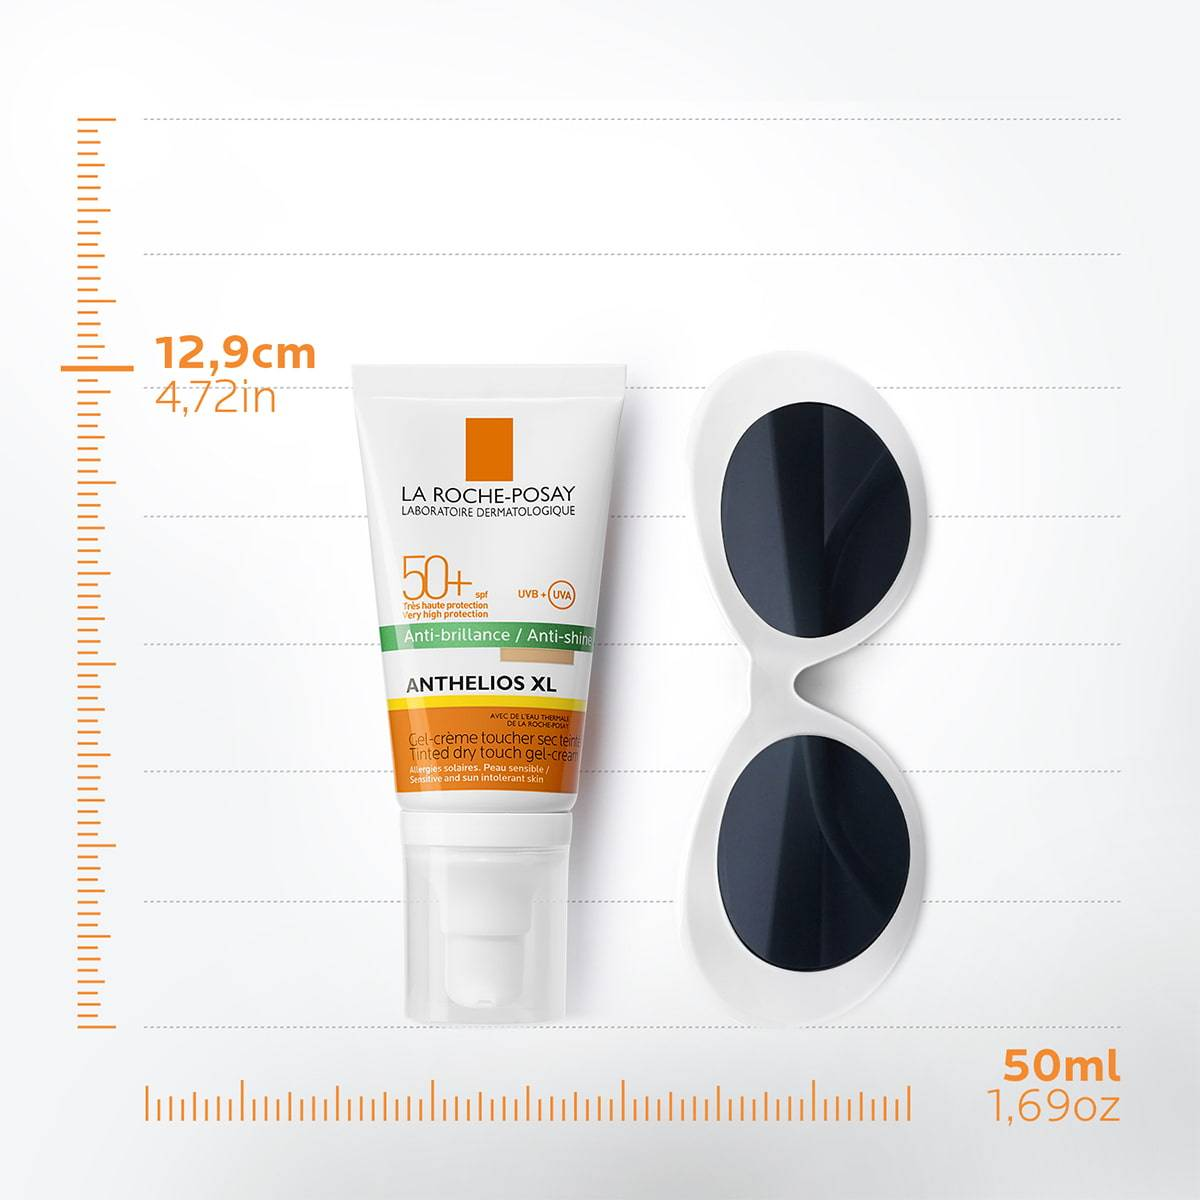 La Roche Posay ProductPage Sun Anthelios XL Tinted Dry Touch Gel Cream